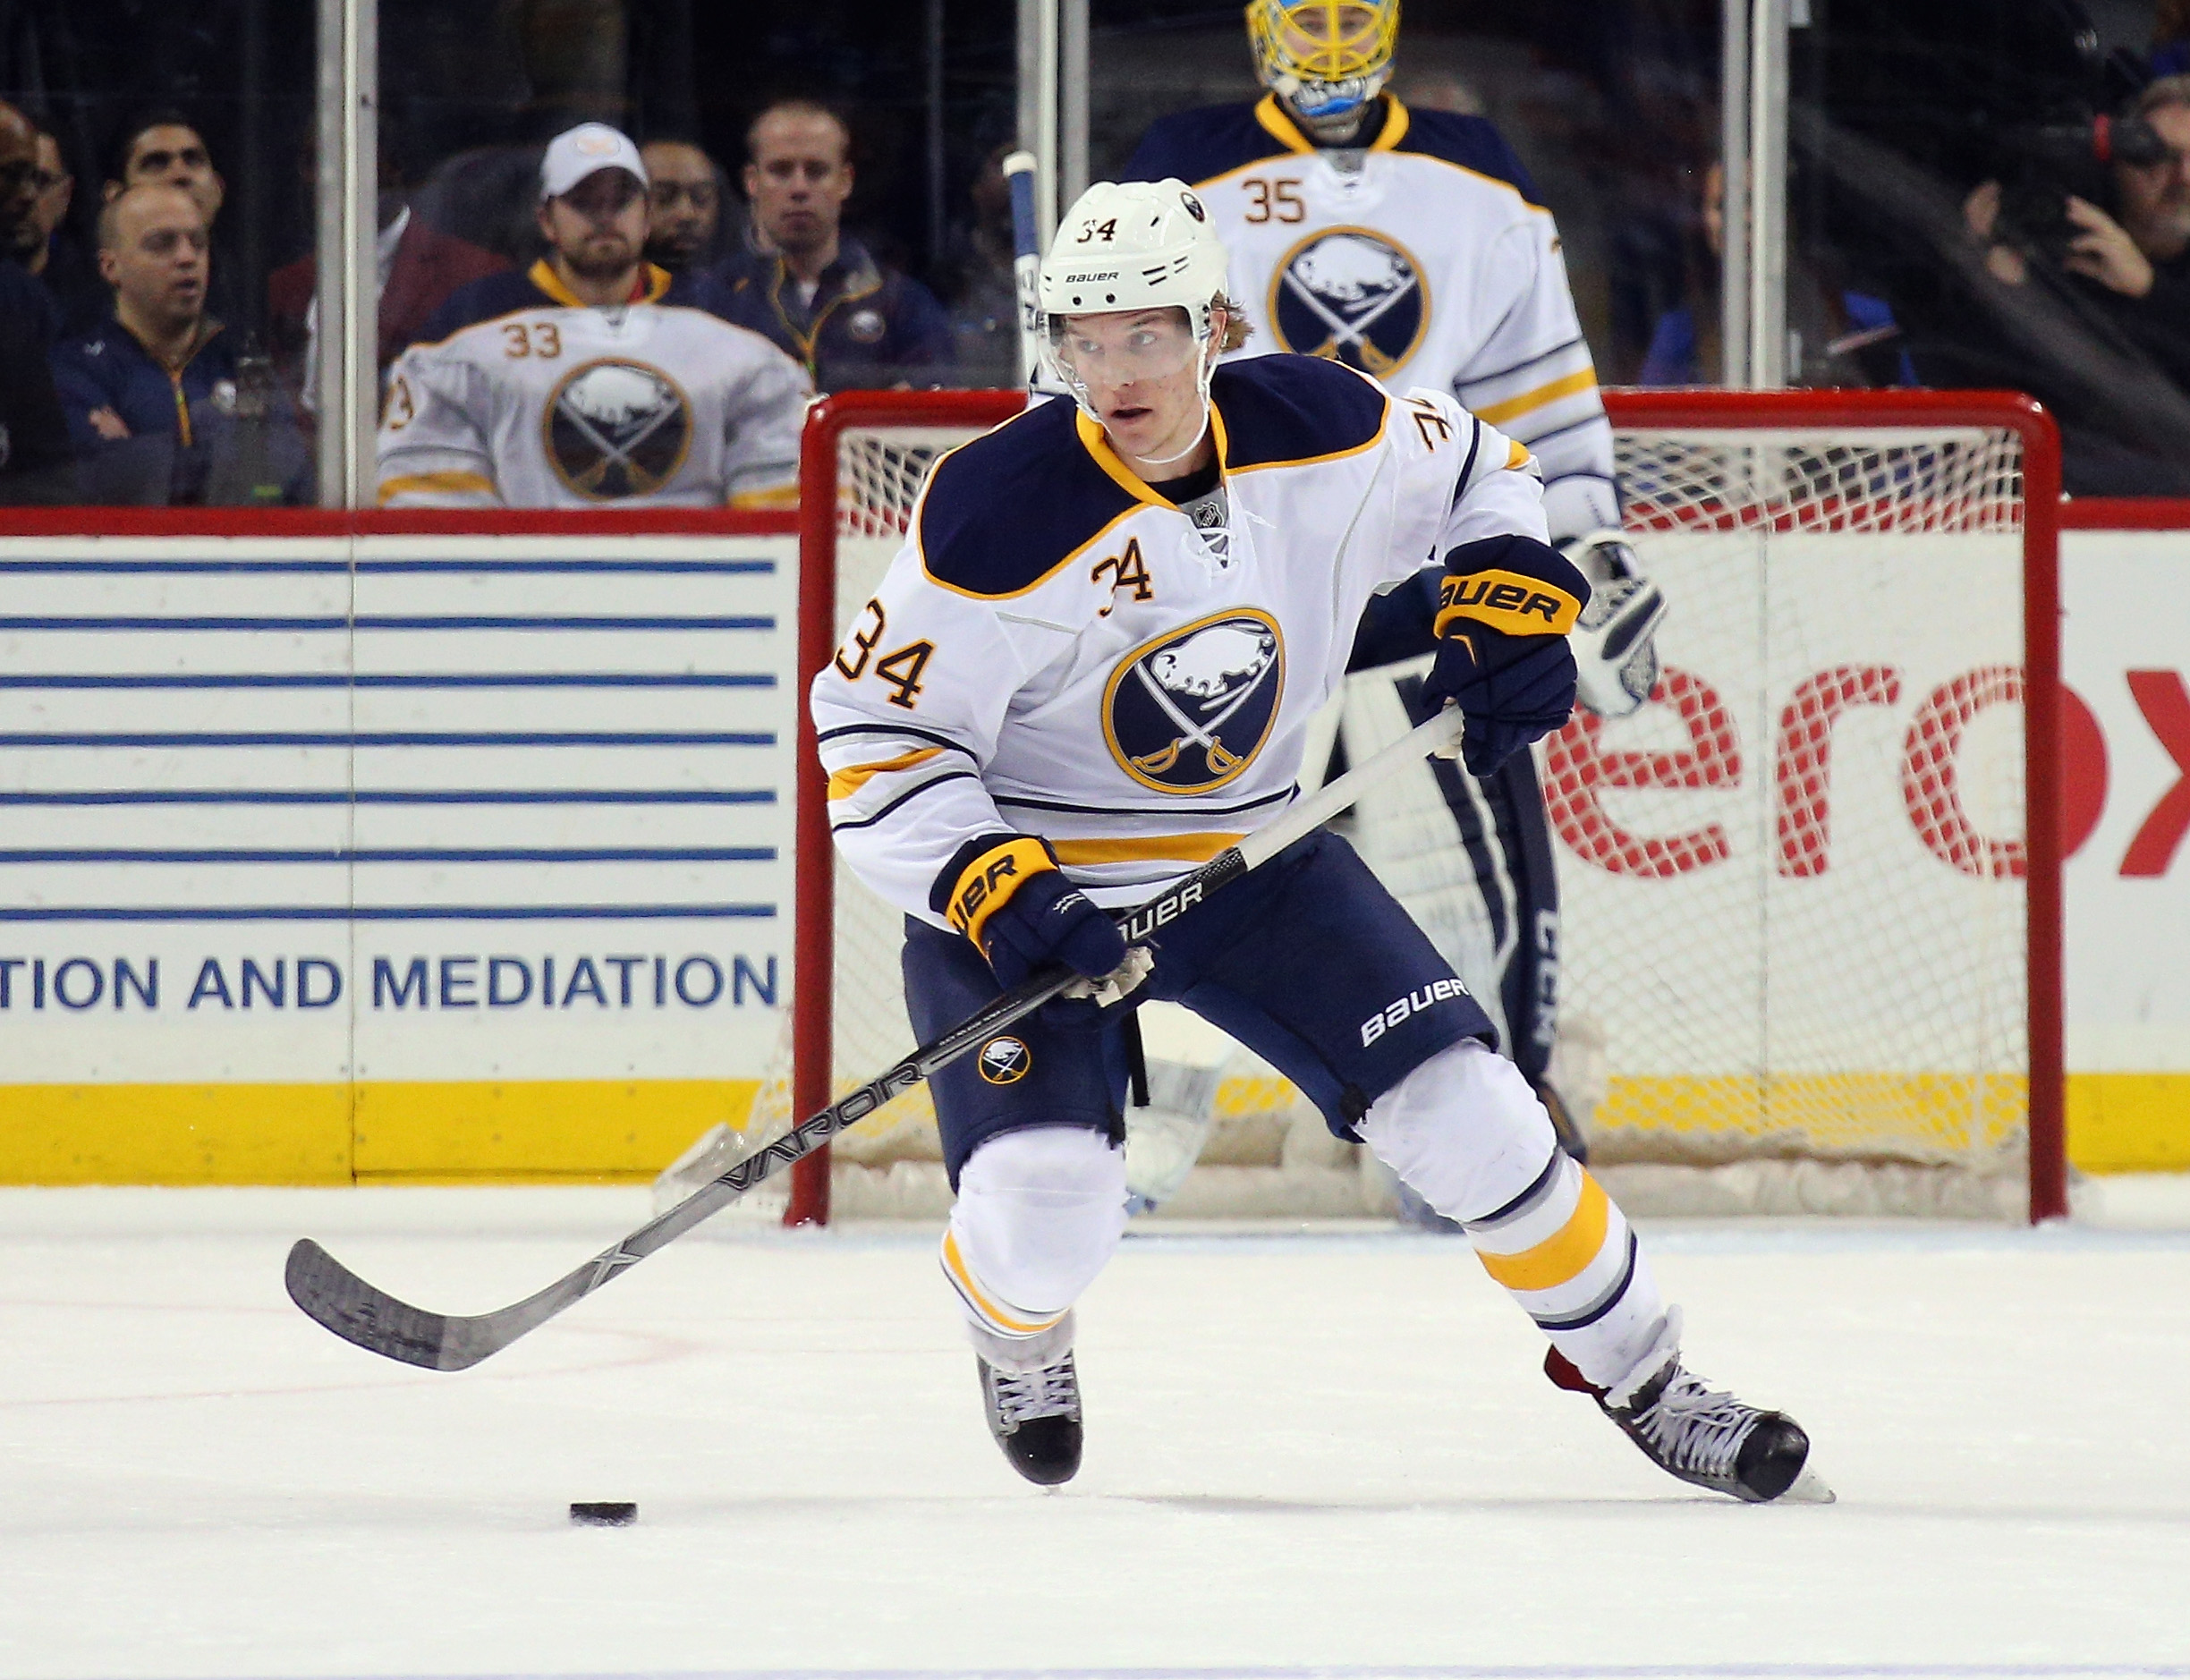 Casey Nelson is one of the few recall options for the Sabres. (Getty Images)